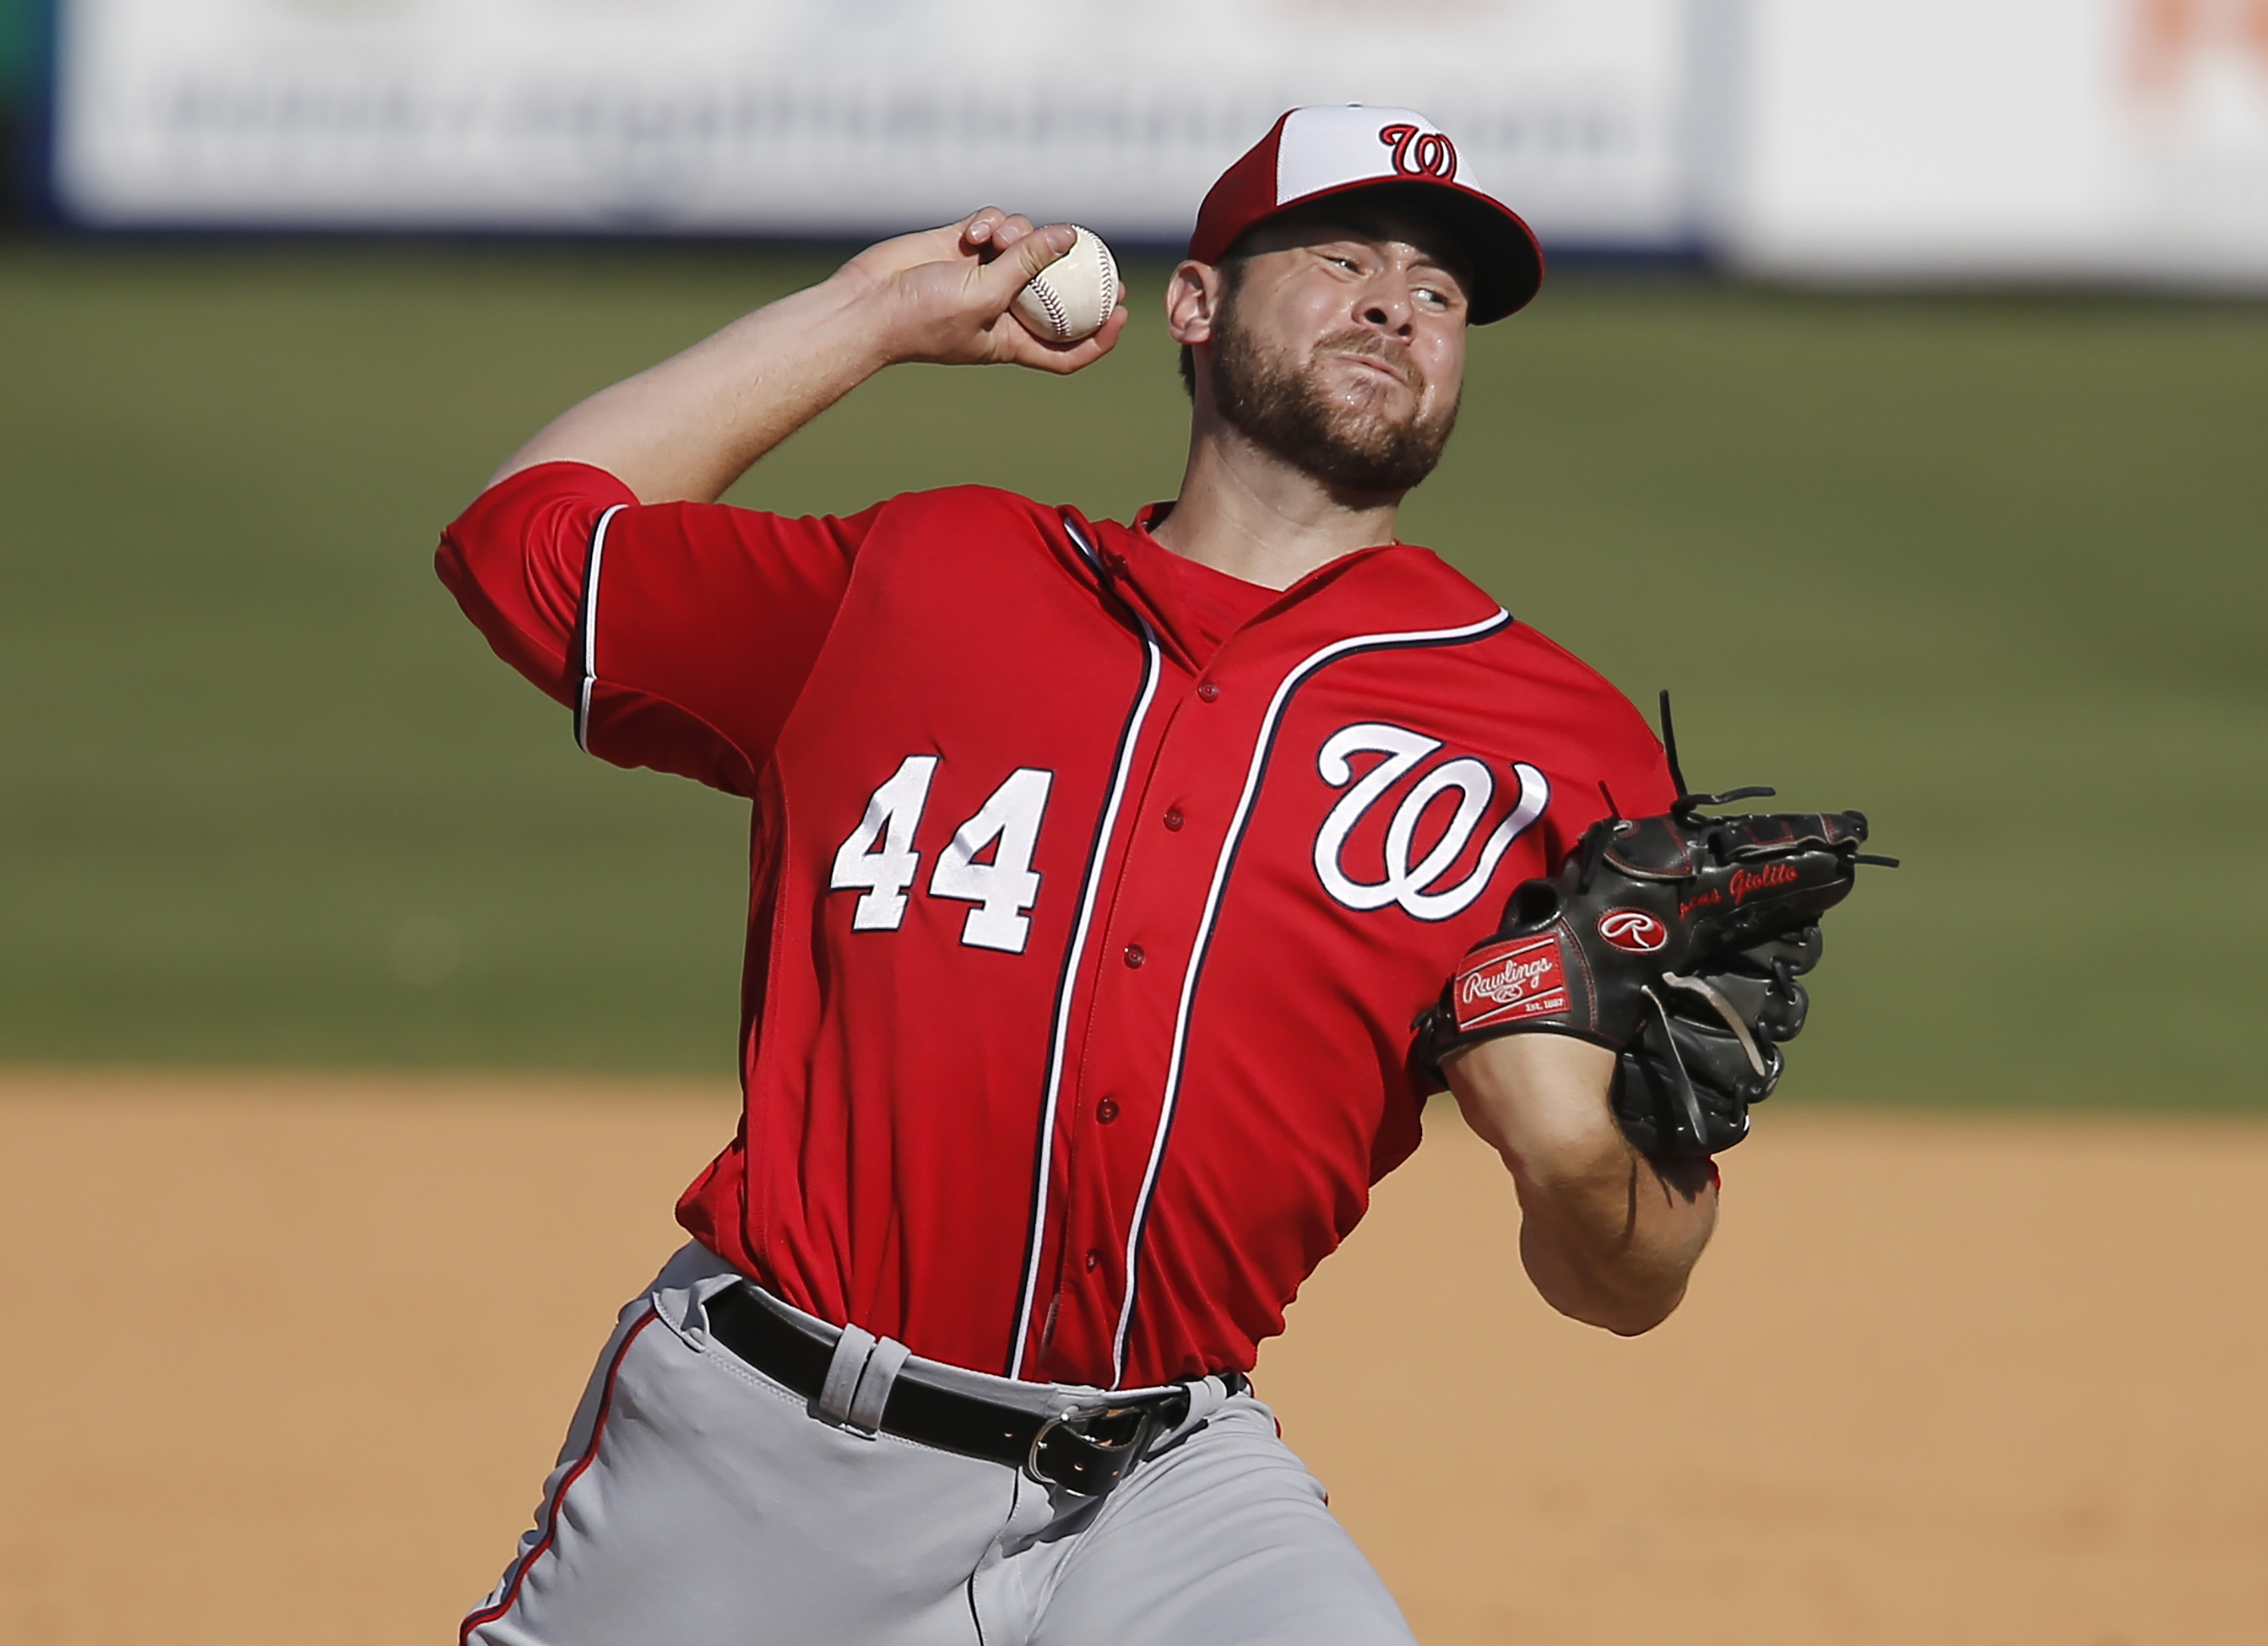 Could Lucas Giolito still be an integral part of the 2016 Nats when Stephen Strasburg returns?